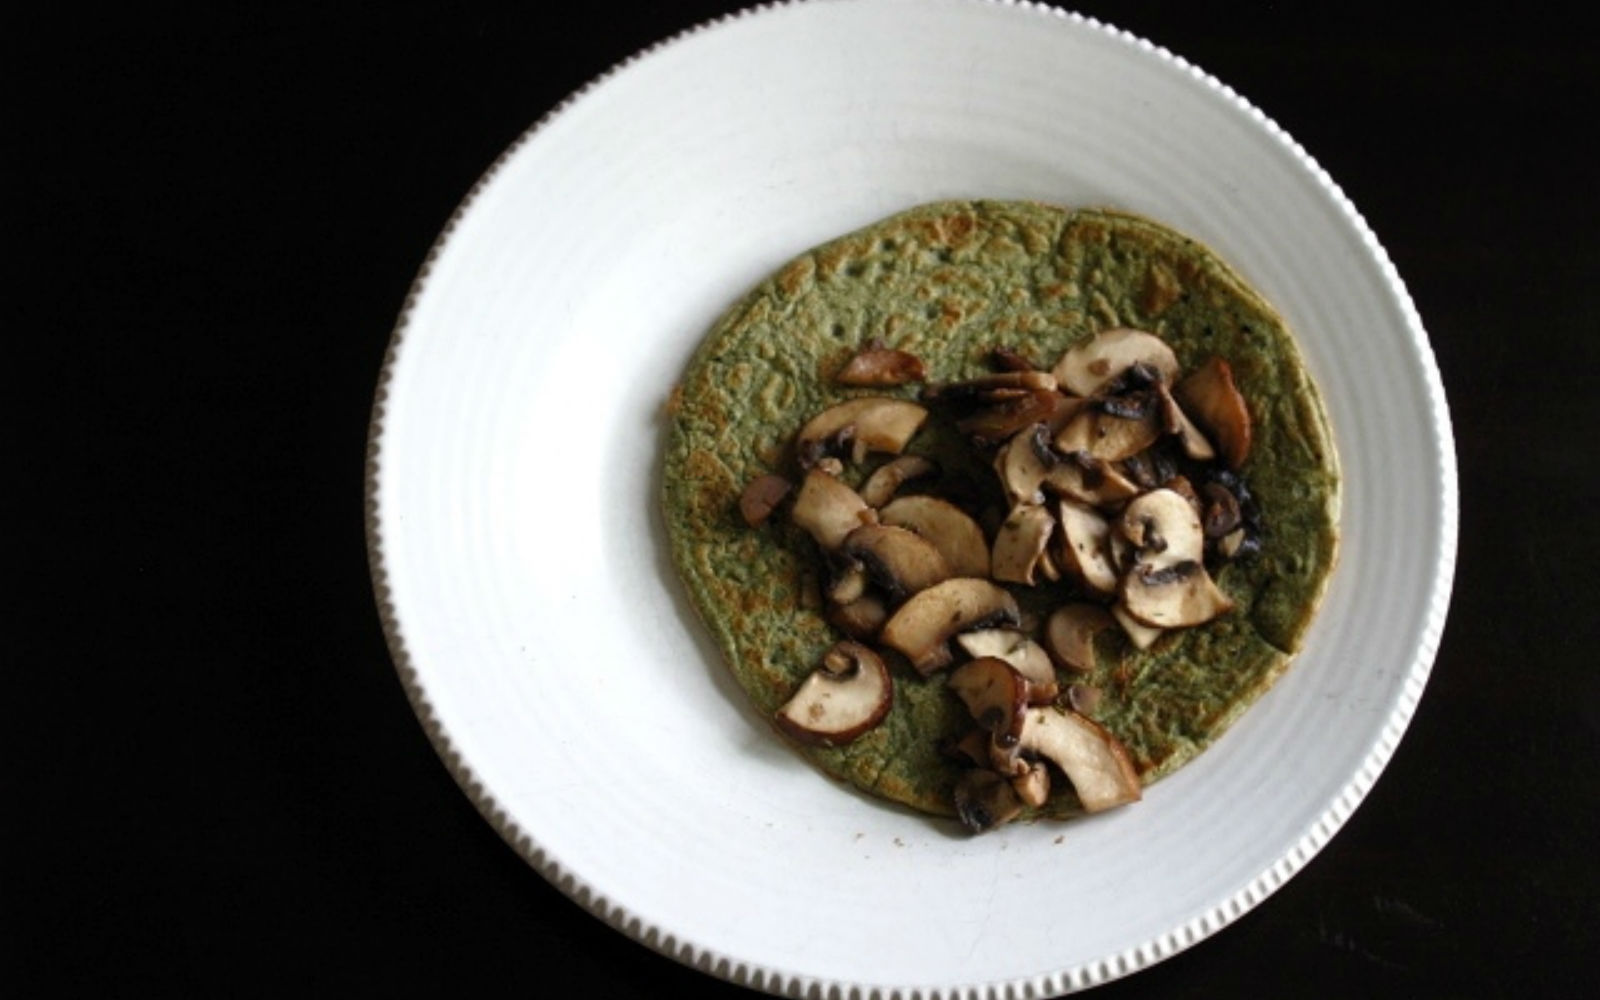 Spinach Crepes with Sautéed Mushrooms [Gluten-Free]